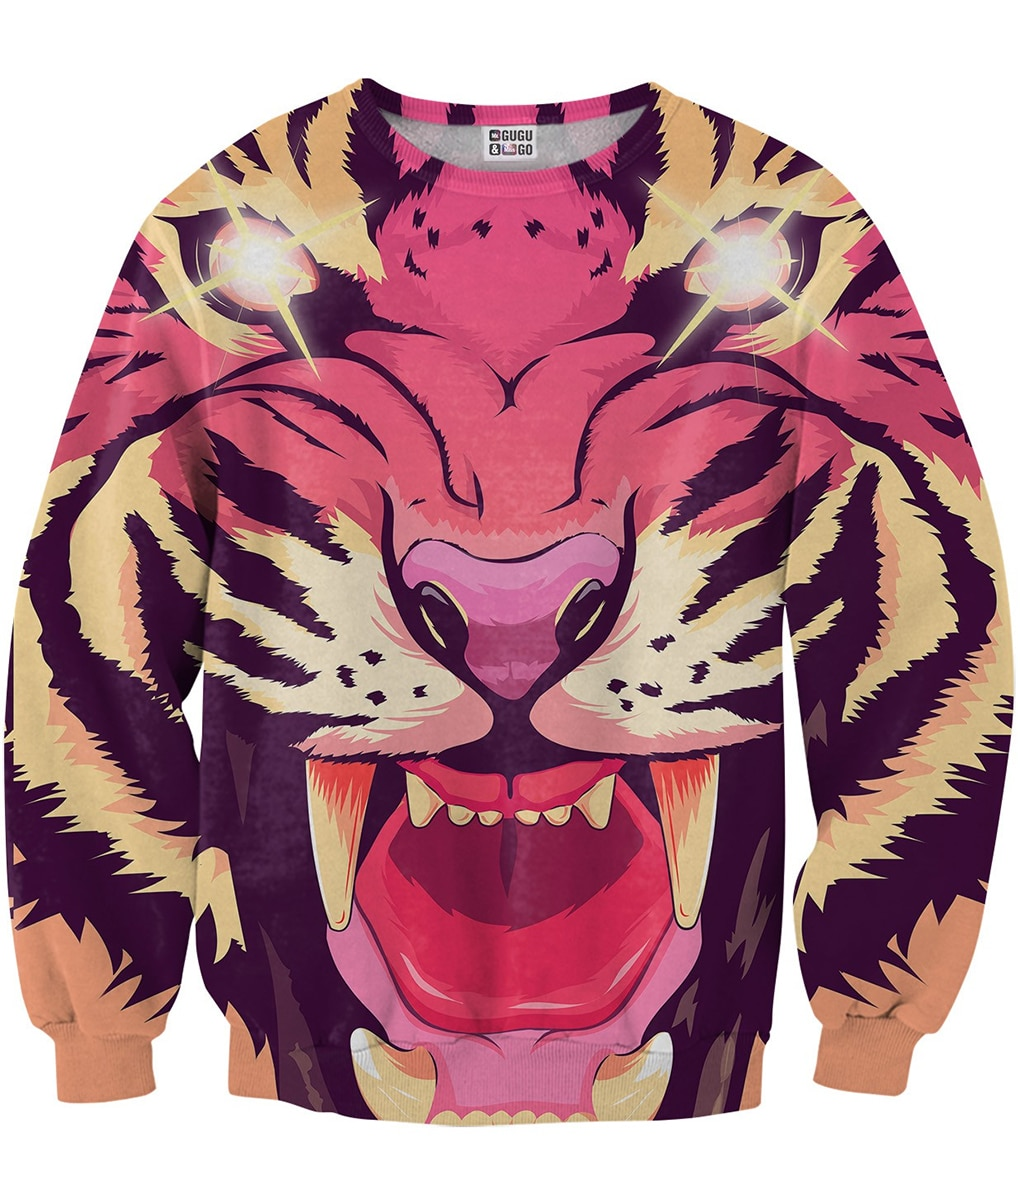 Alila Activewear Tiger Sweater  by Mr Gugu